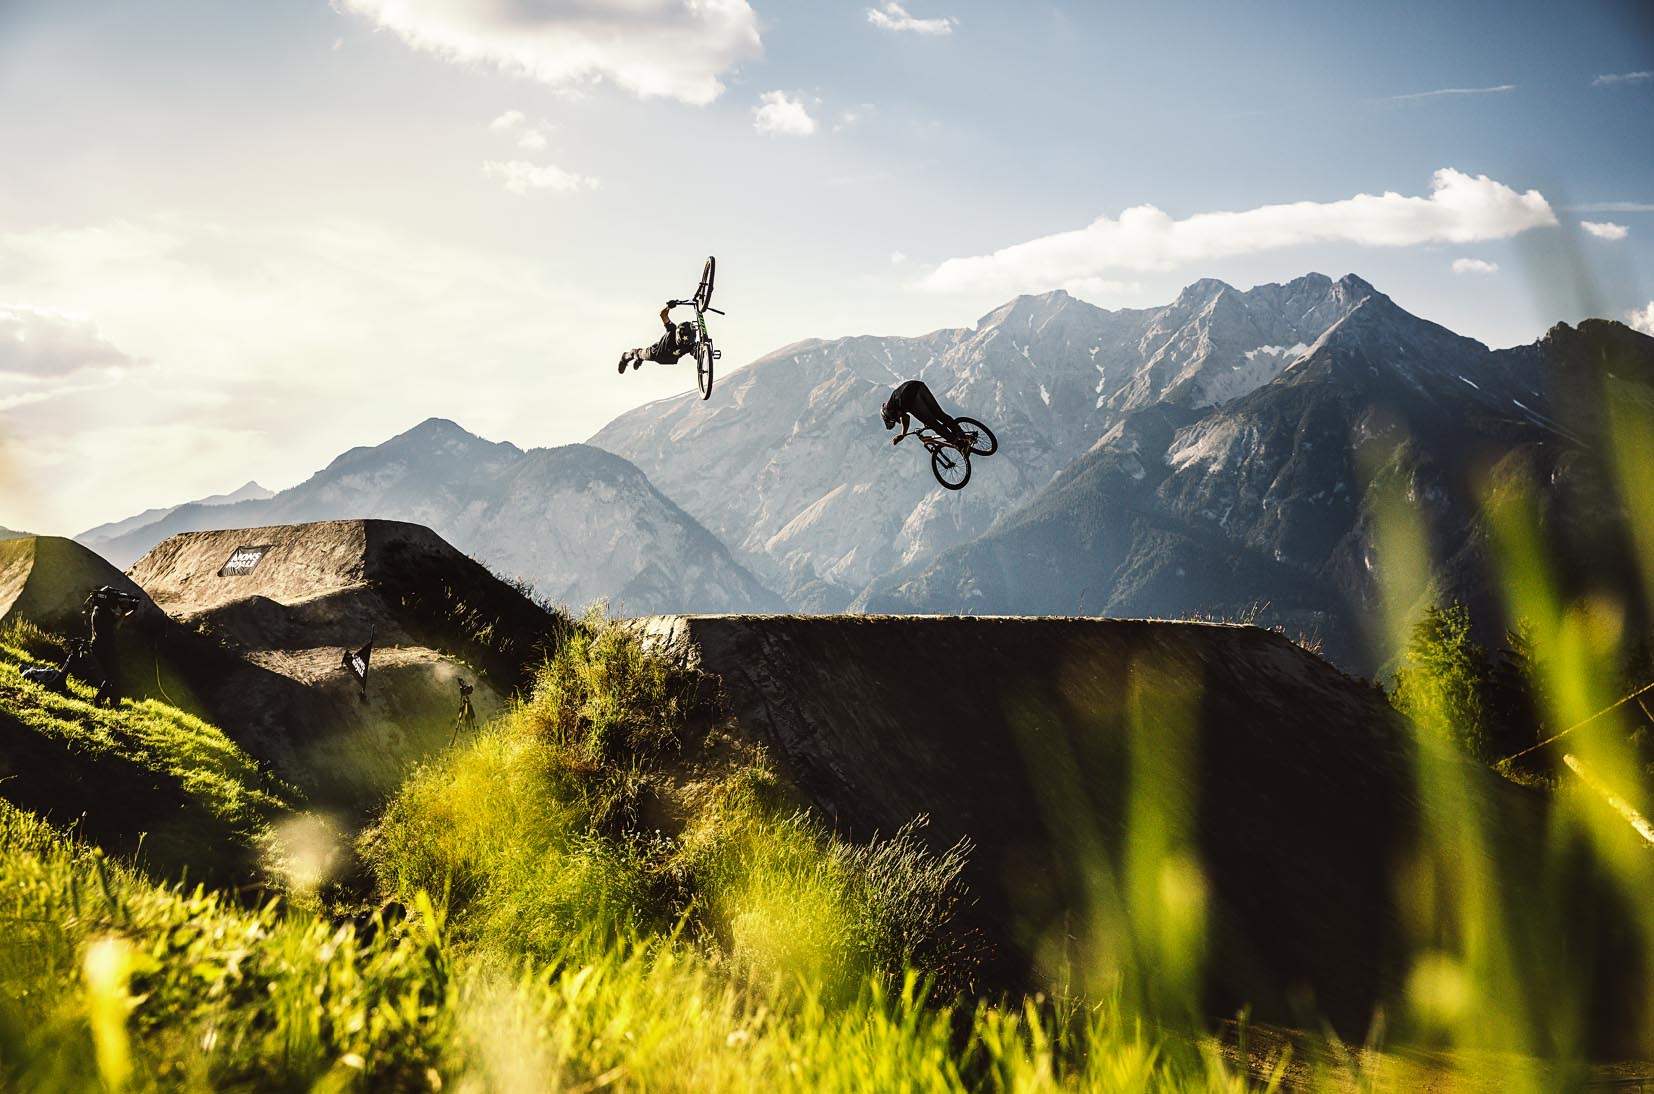 crankworx_dual_speed_and_style_superman_art_jump_mountainbike